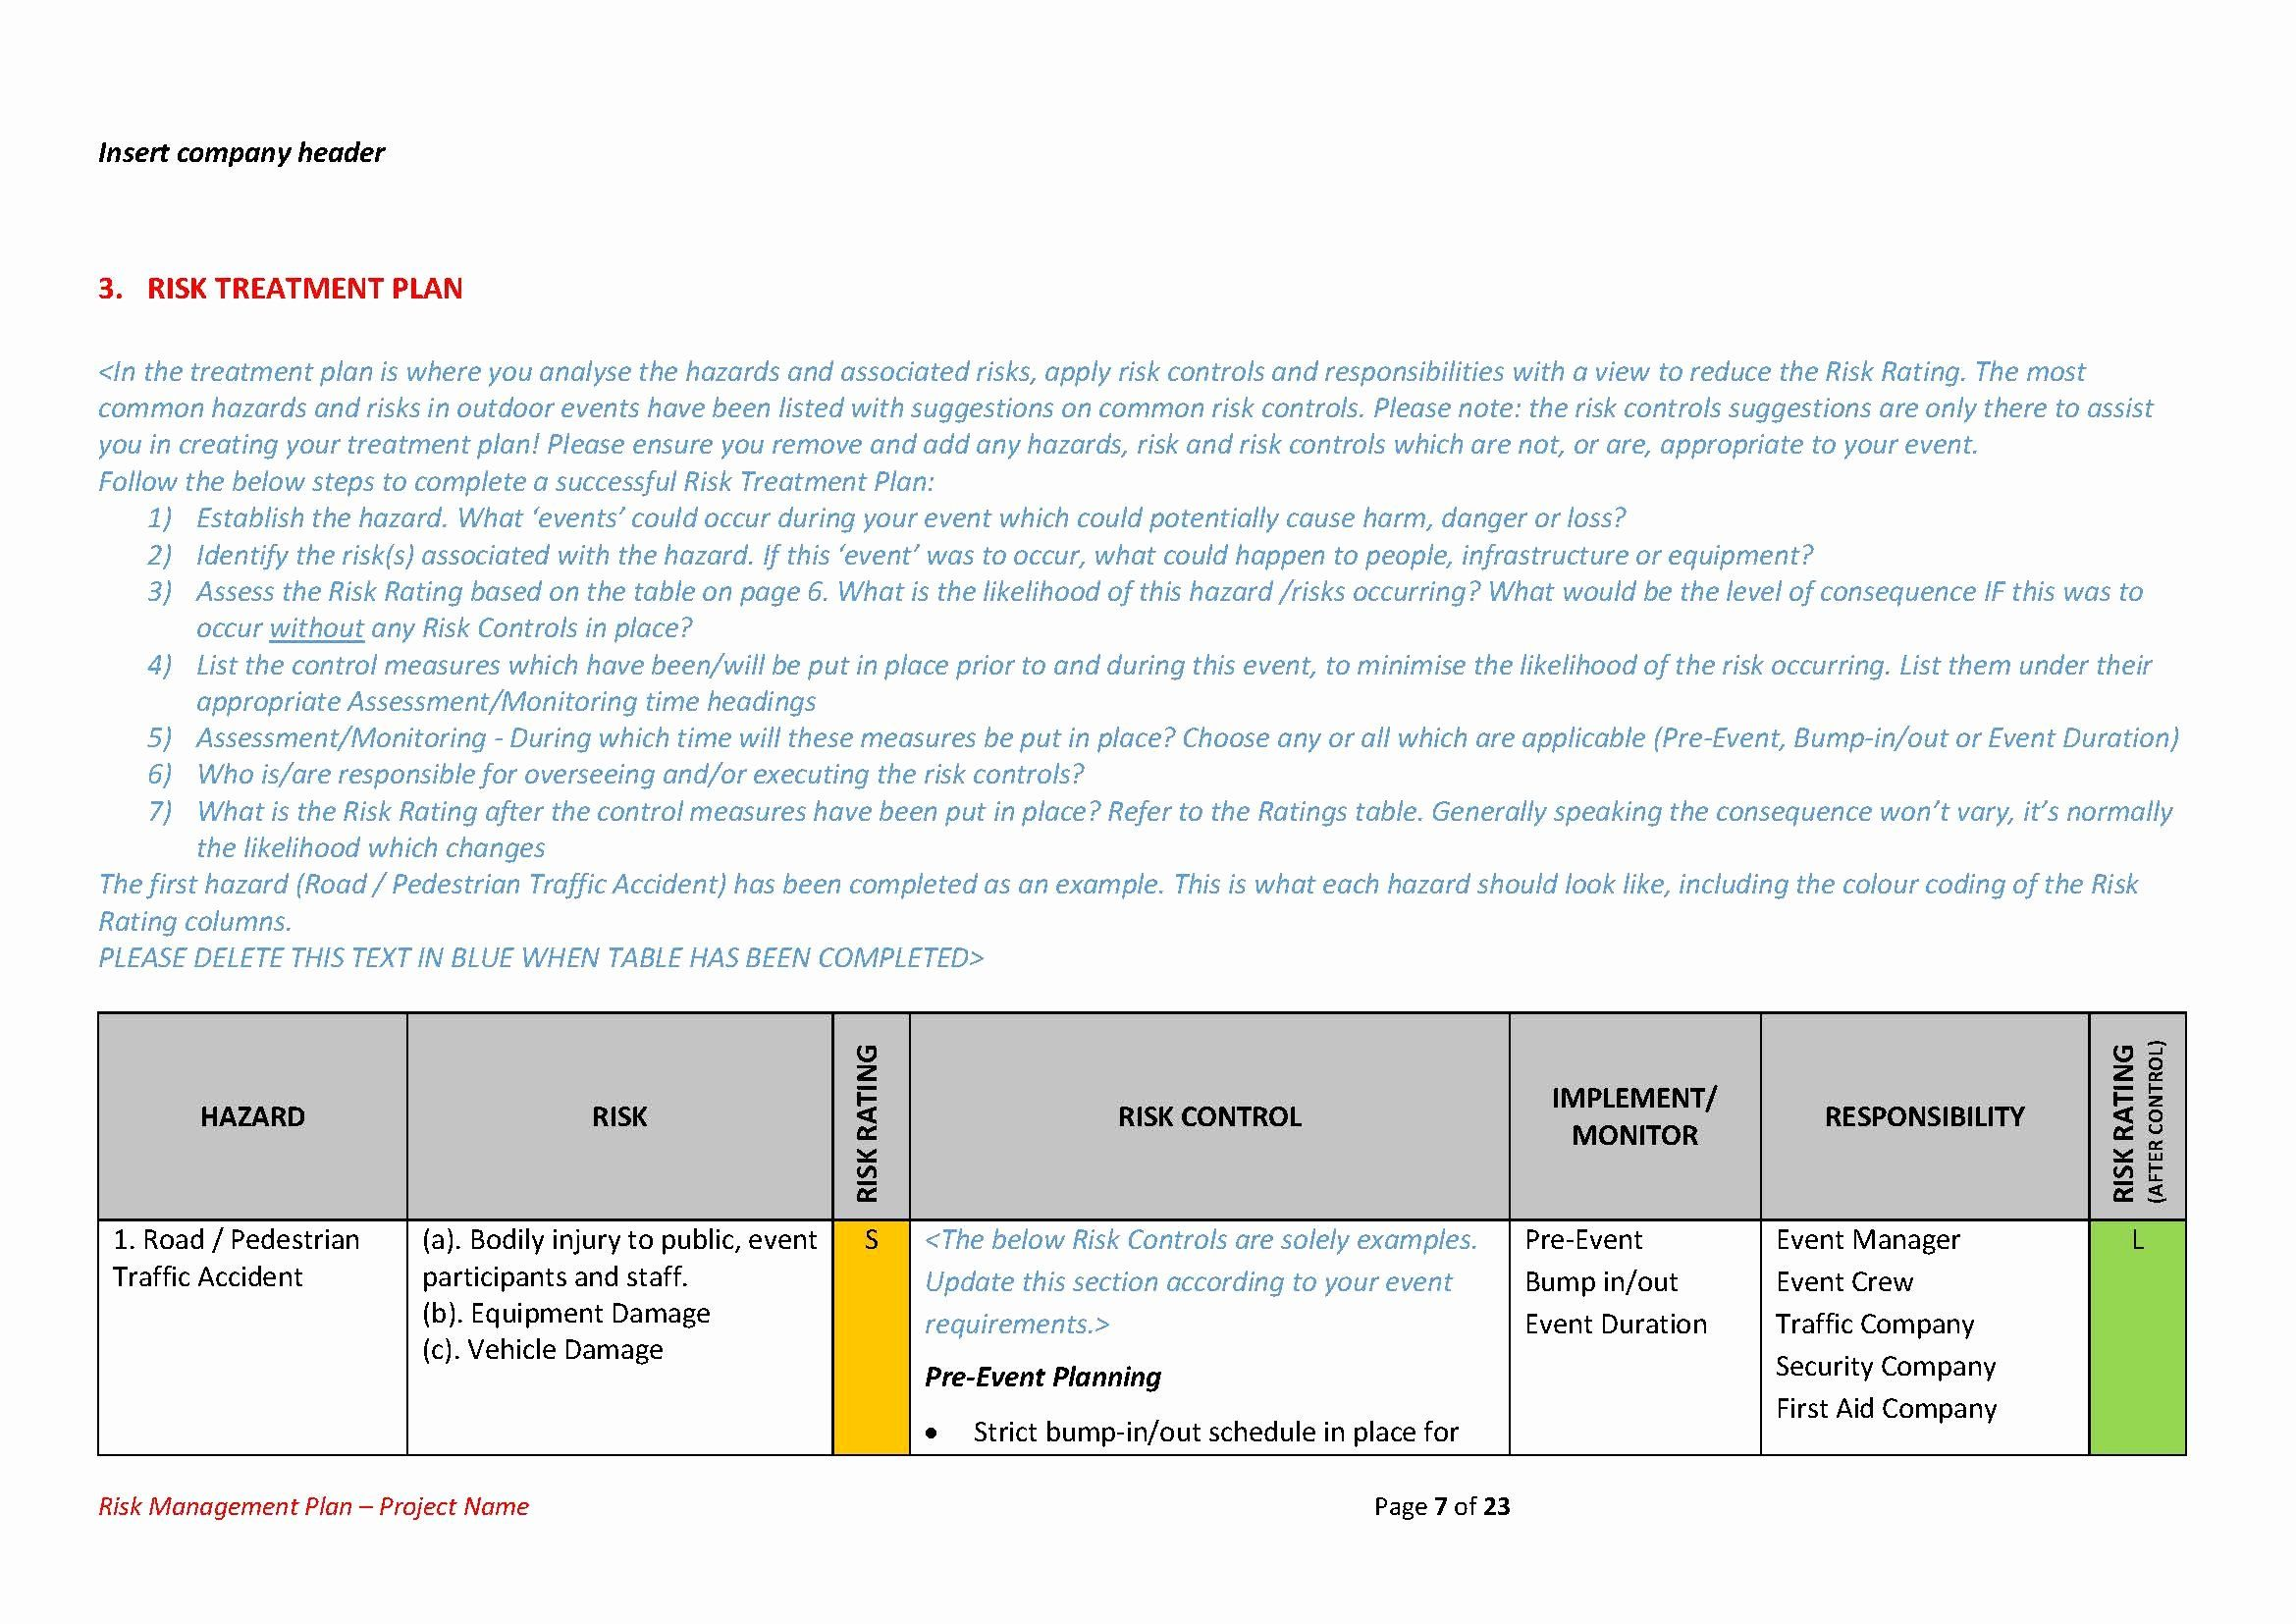 Risk Management Plan Template Doc Luxury Risk Management Plan Template Easy To Use Risk Management Business Plan Template Free How To Plan